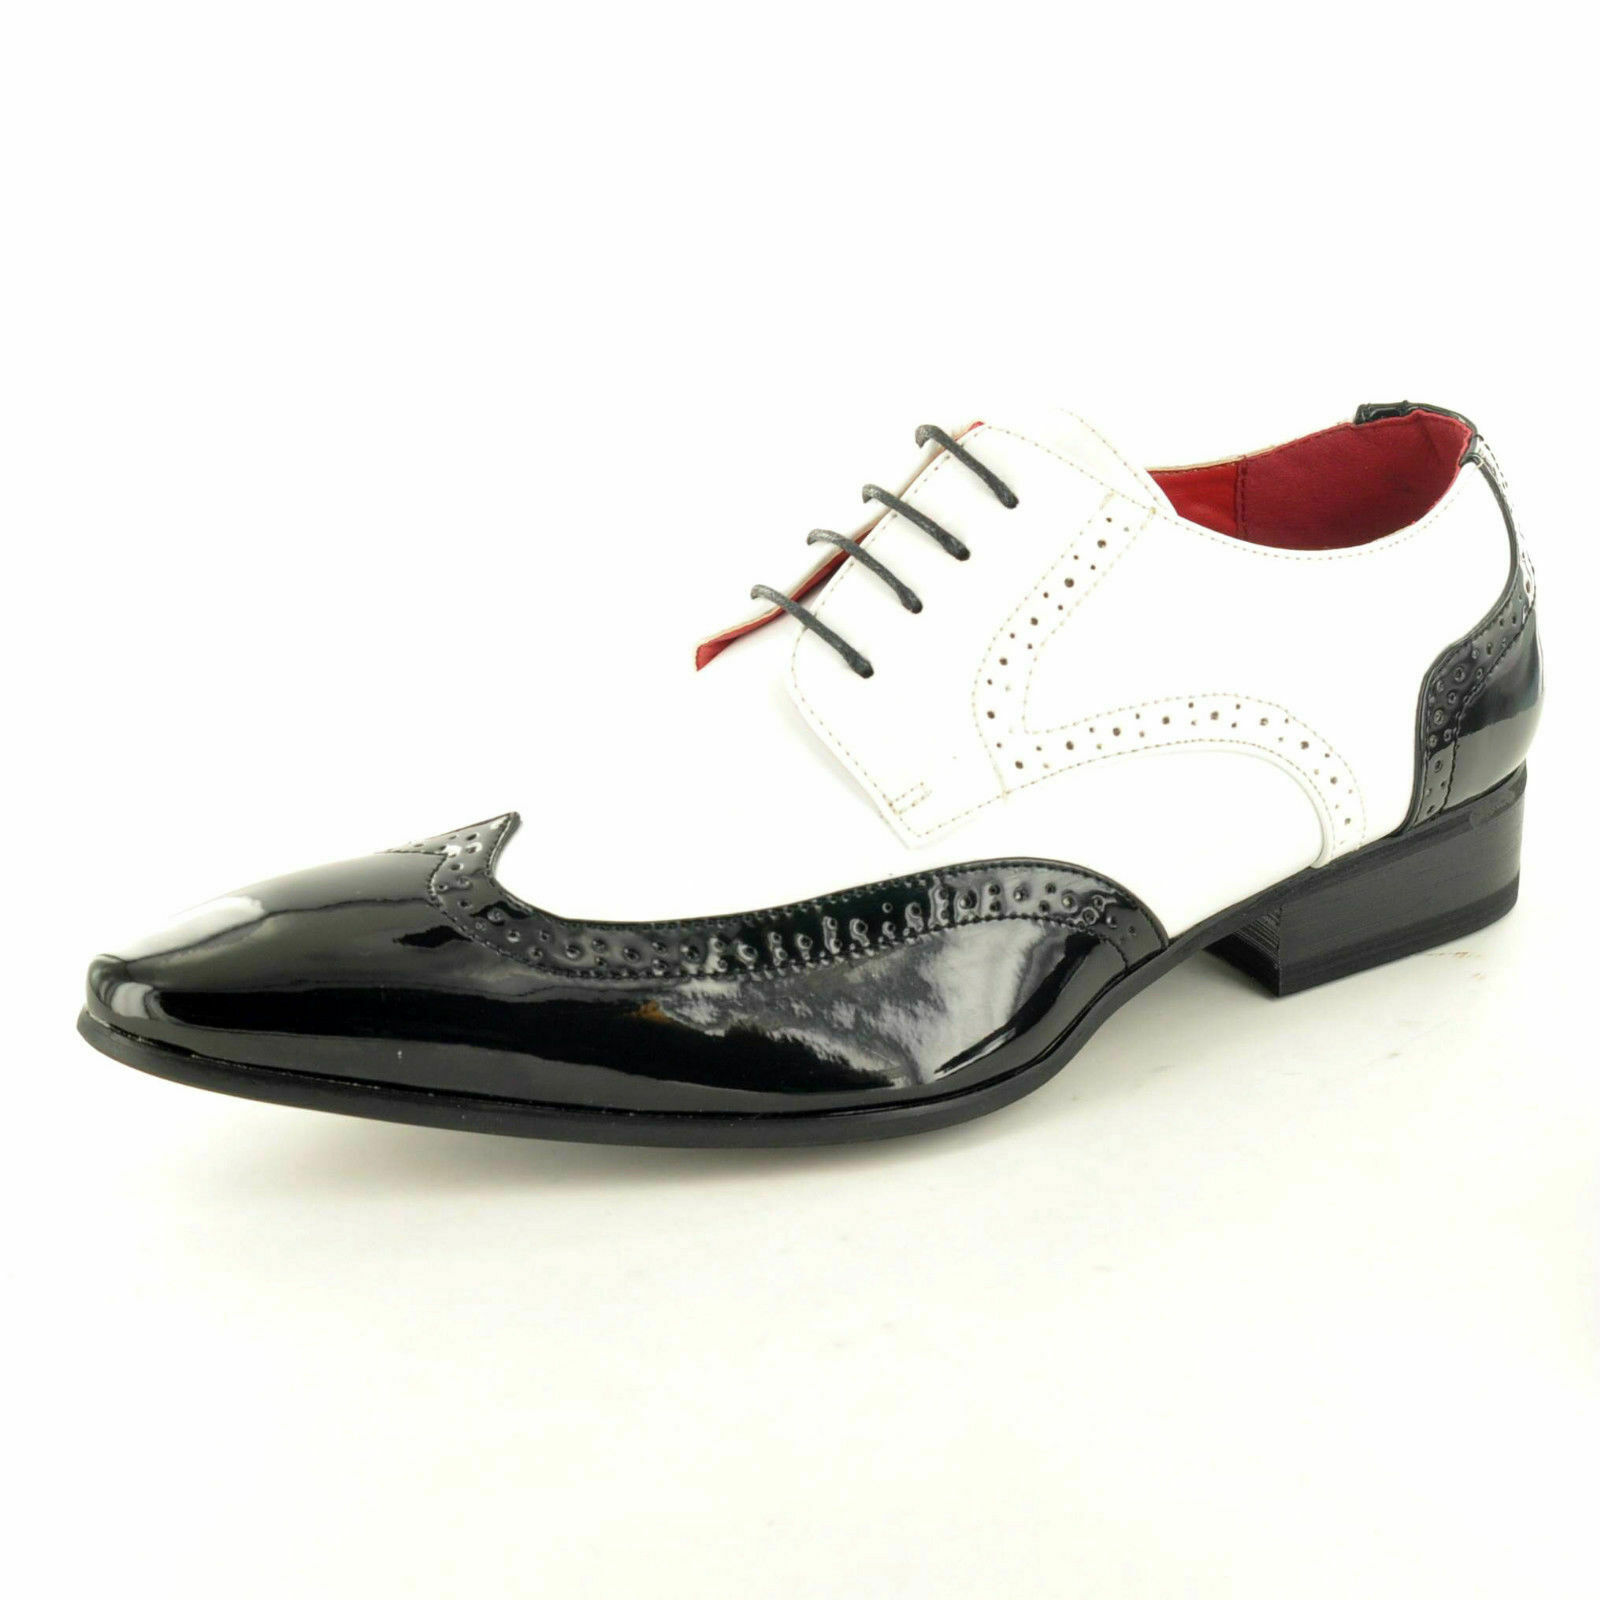 Mens Leather Lined Pointed Winkle Pickers Brogue Patent shoes Boots